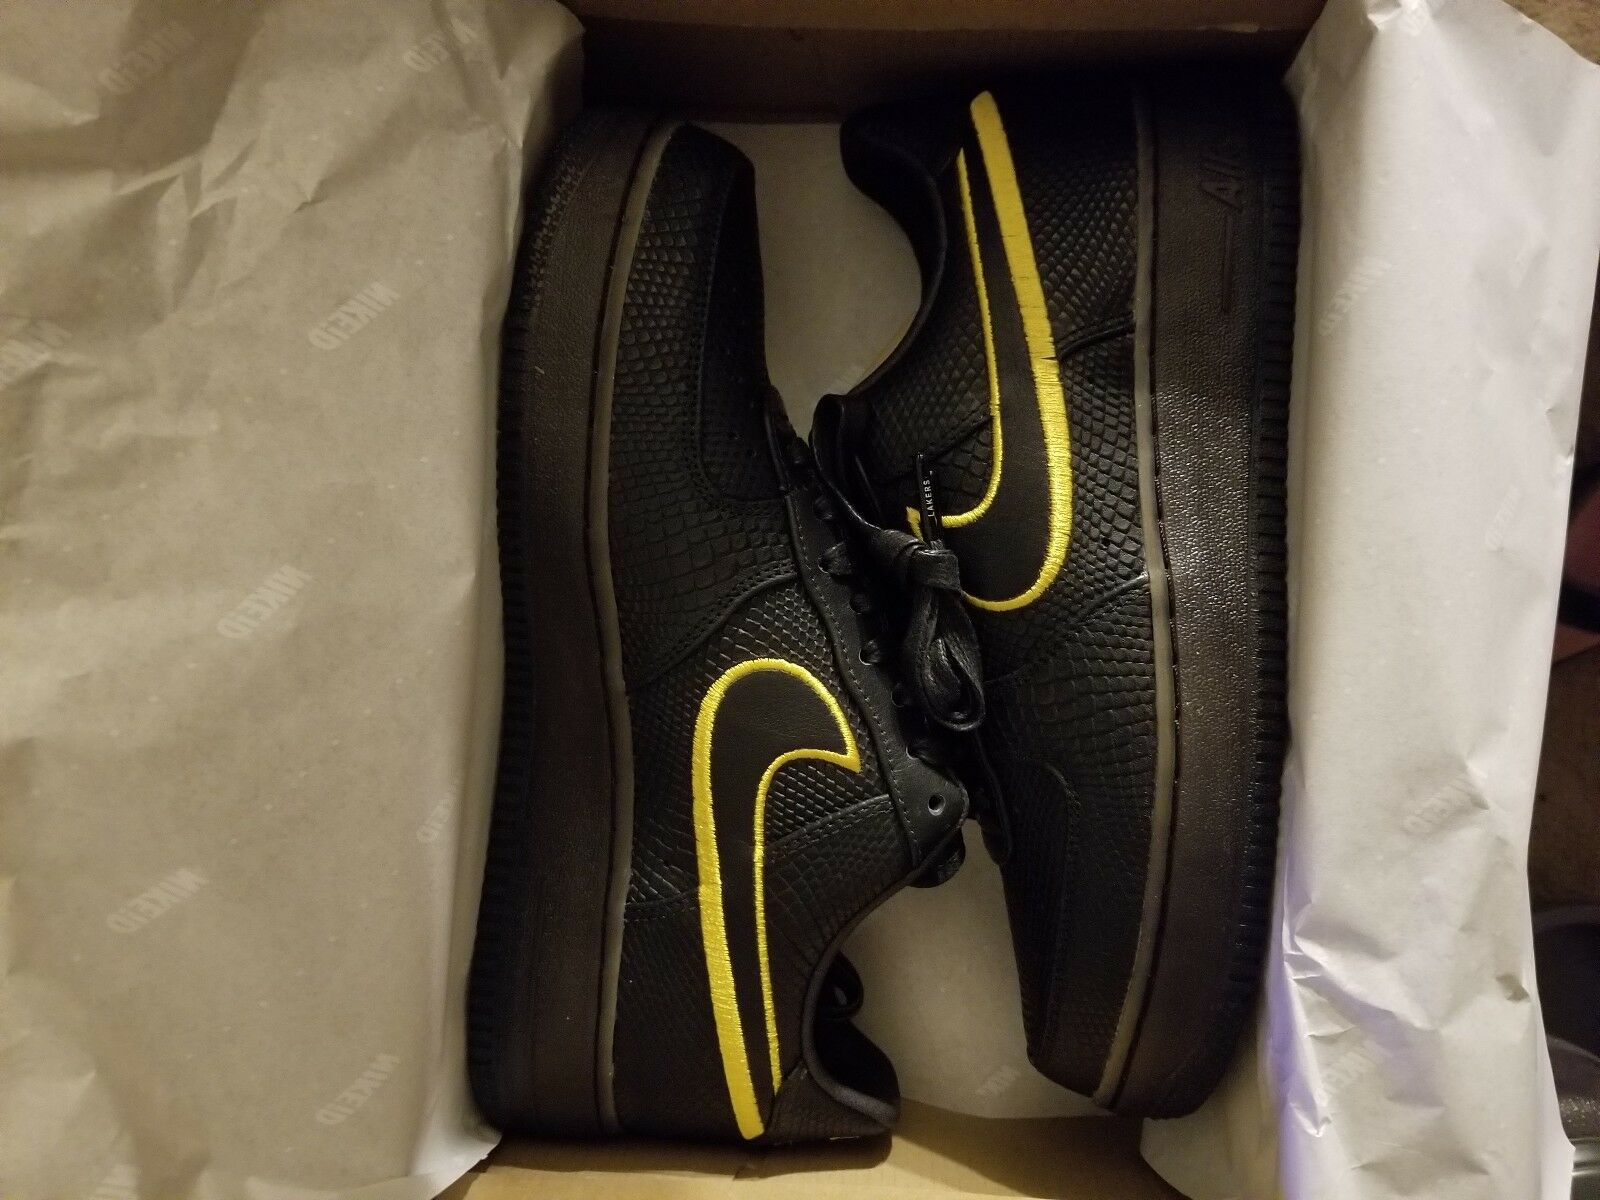 Nike Air Force 1 Low Premium iD Kobe Black Mamba Retirement 8 24 Comfortable Special limited time